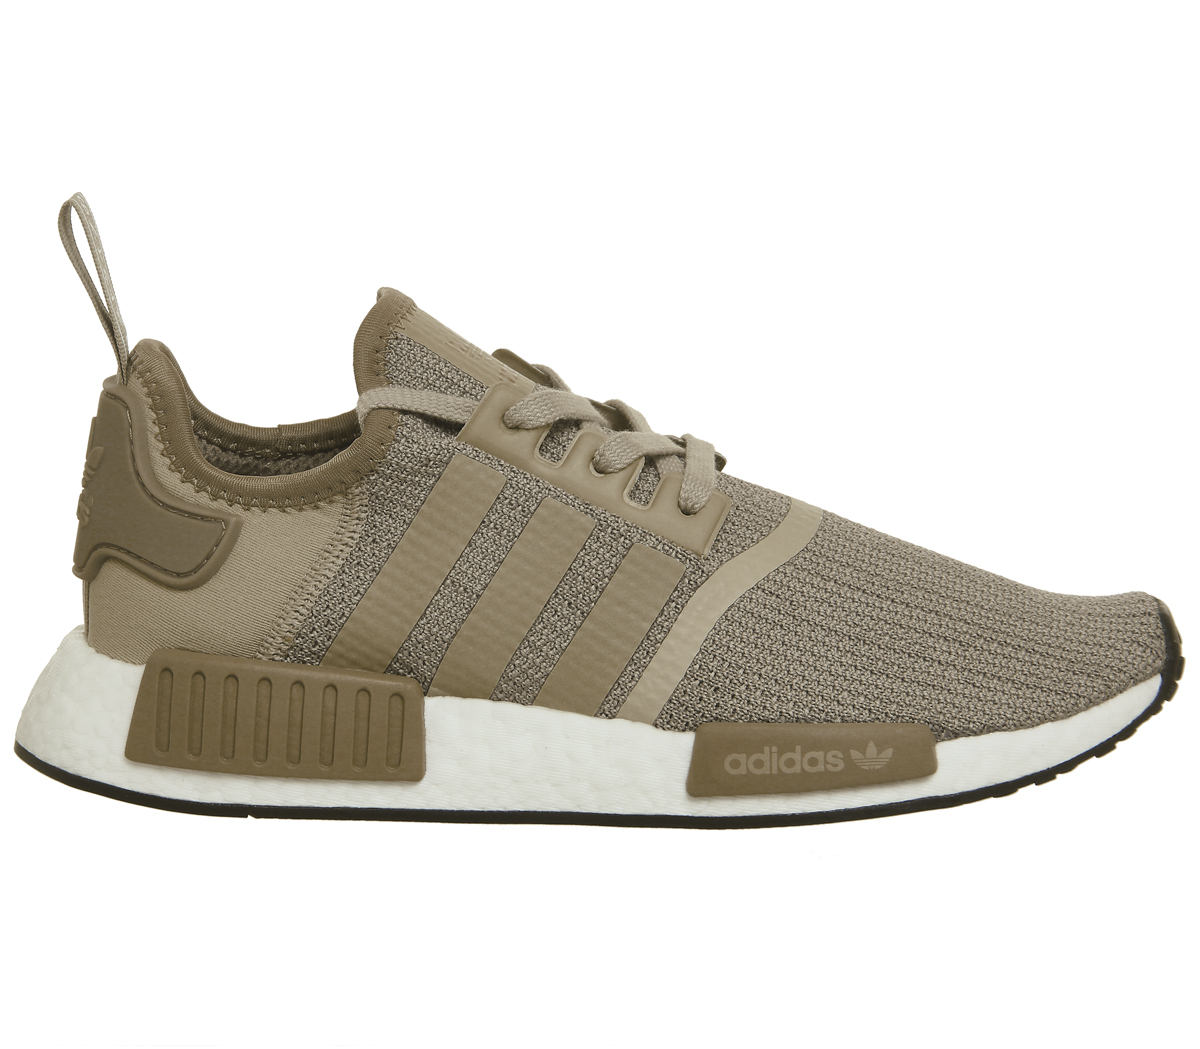 11749f2a00ce Adidas Nmd R1 Trainers RAW GOLD CARDBOARD WHITE Trainers Shoes